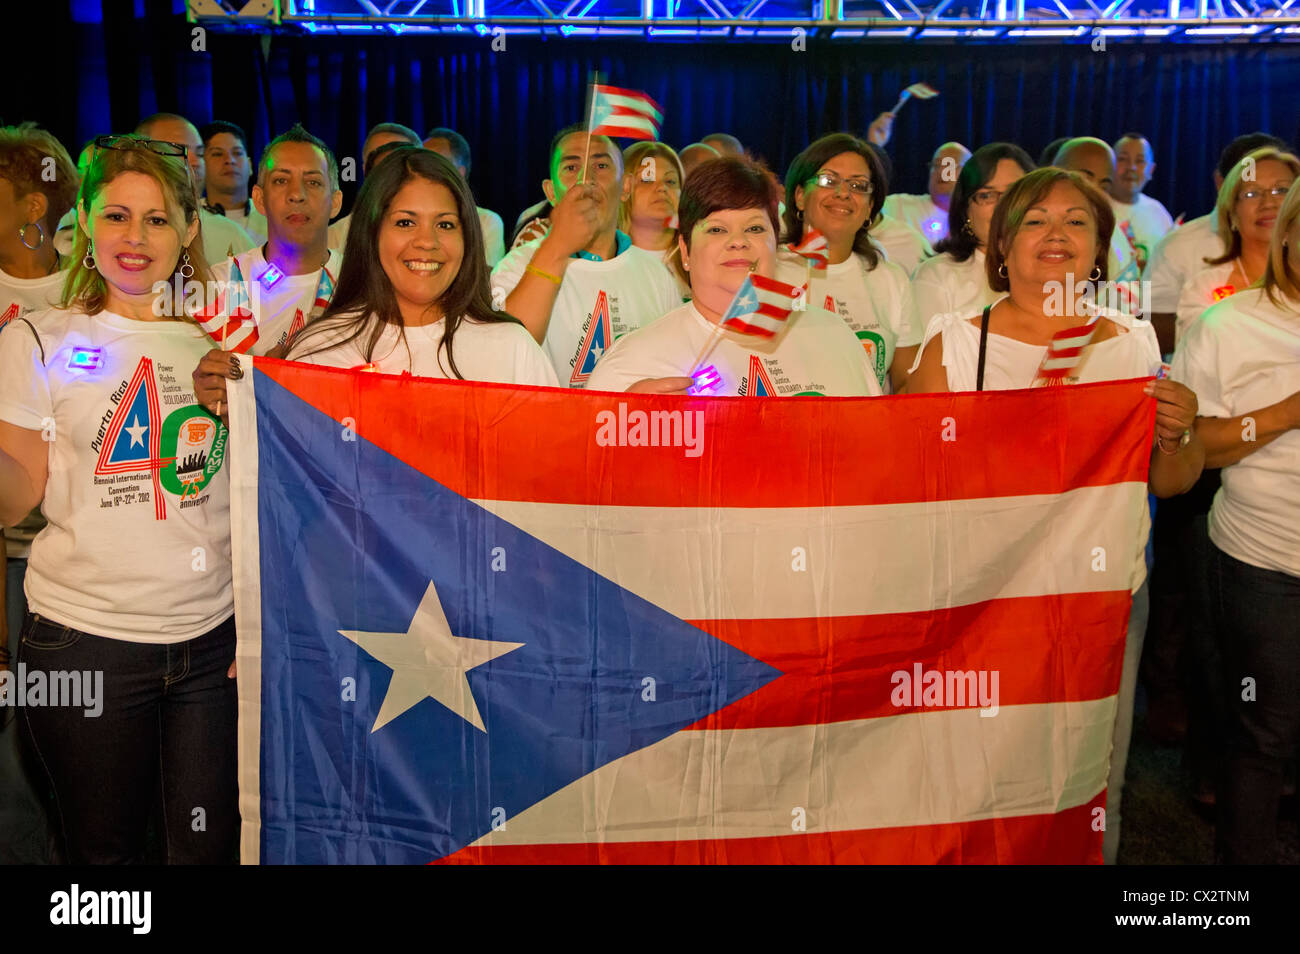 Puerto Rican delegates at the biannual convention of the American Federation of State, County and Municipal Employees - Stock Image